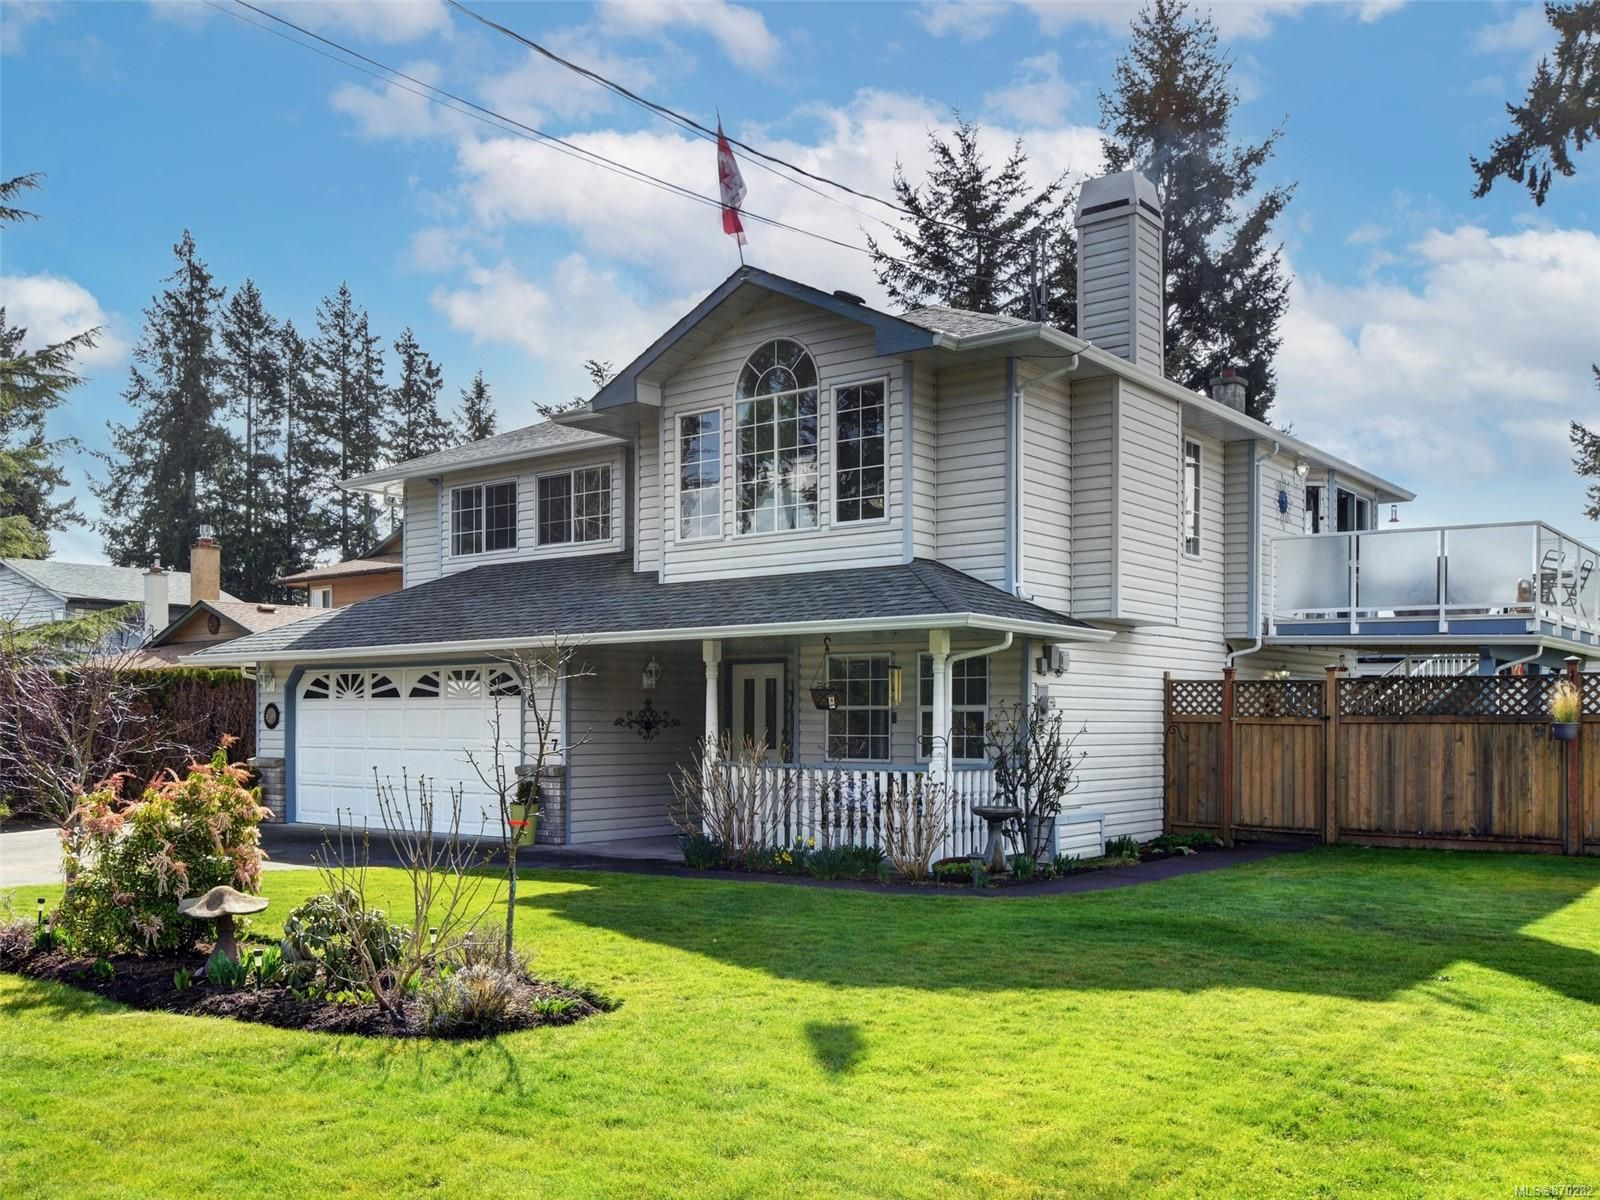 Main Photo: 617 Evans Dr in : Co Hatley Park House for sale (Colwood)  : MLS®# 870282